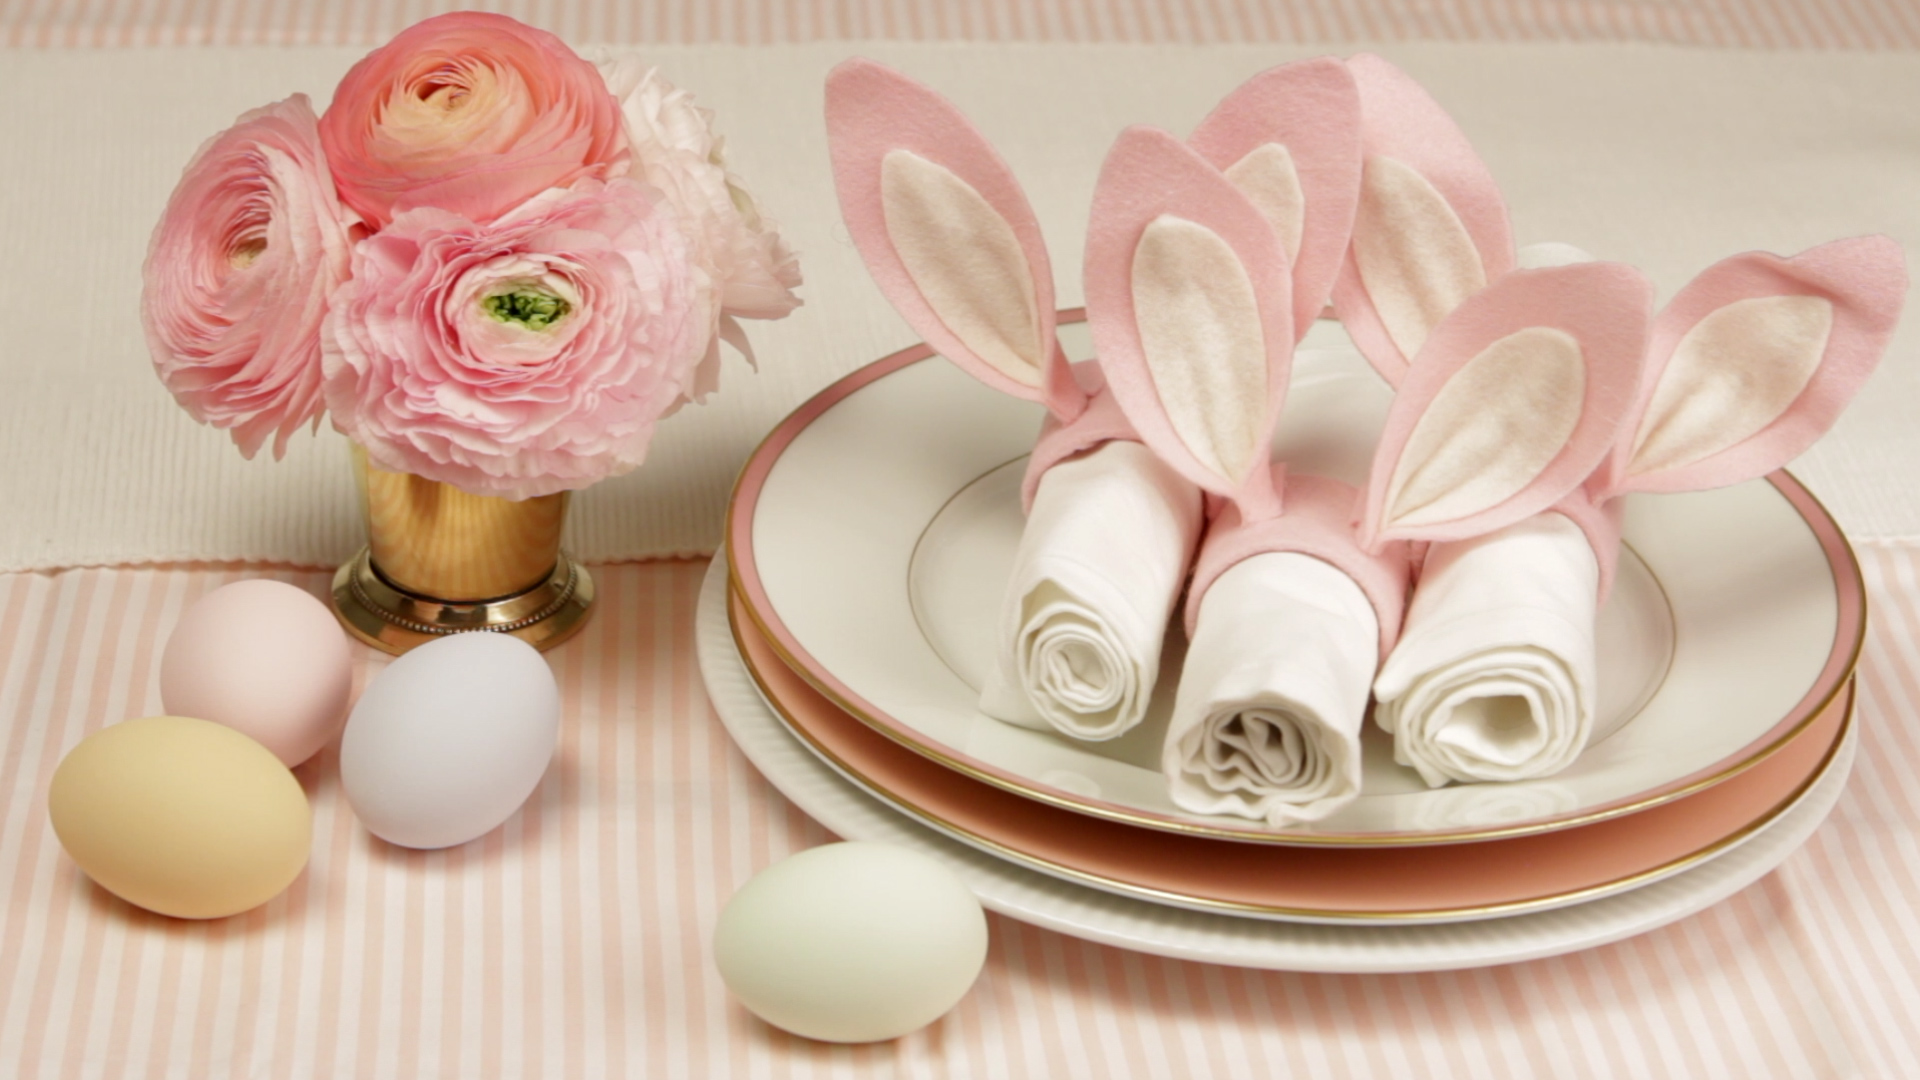 How to Make Bunny Ear Napkin Rings